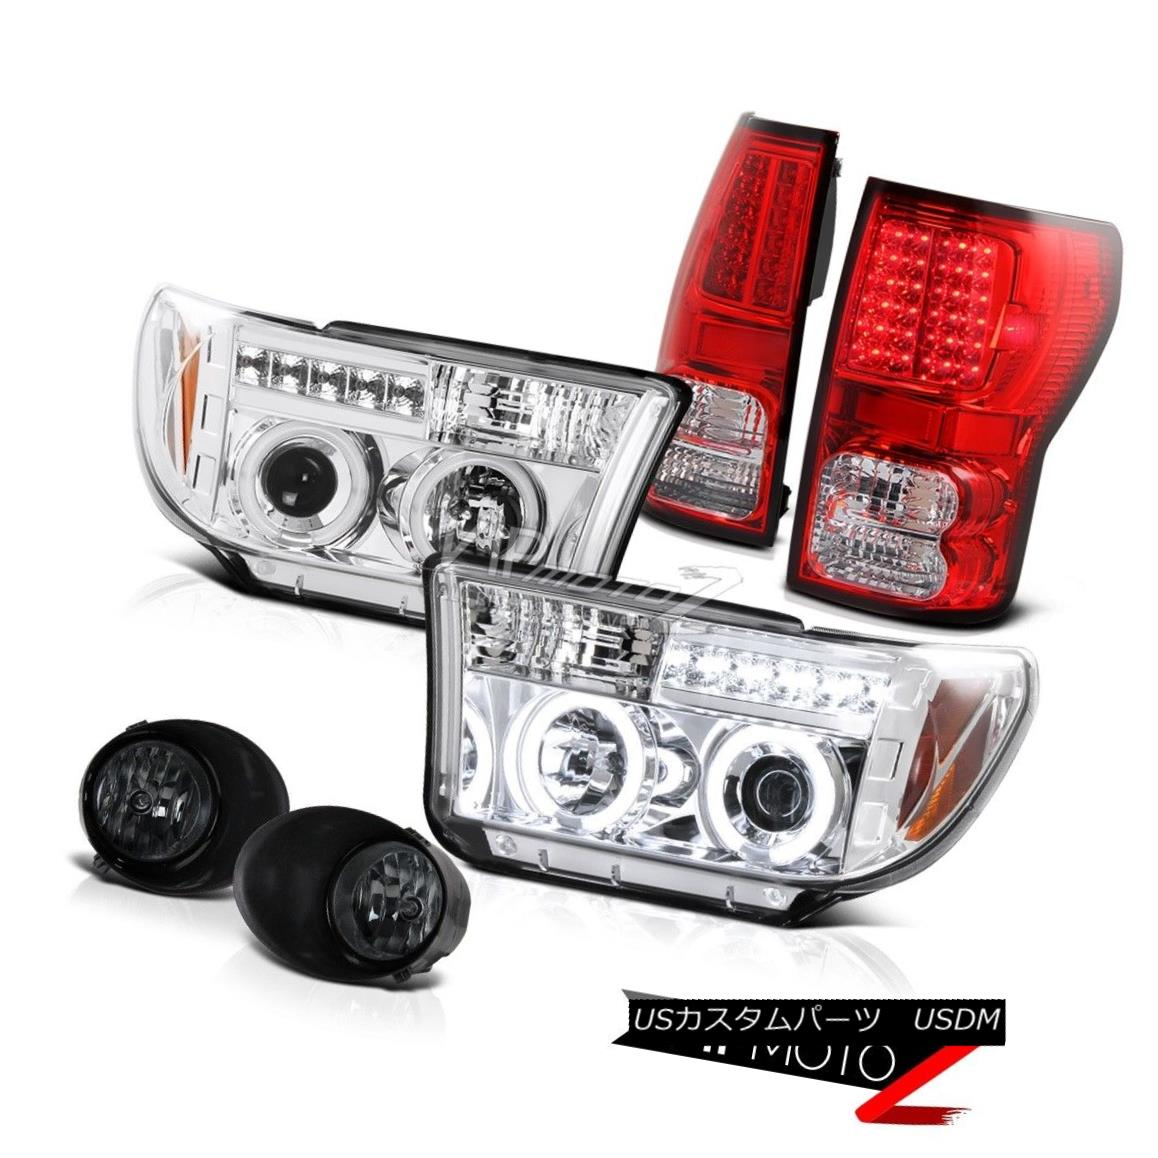 ライト・ランプ, ヘッドライト  07-2013 CCCFL Halo Projector HeadlightLed Tail LightFog Lamp 07-13 Tundra 07-2013 CCFL Led Fog07-13 Tundra